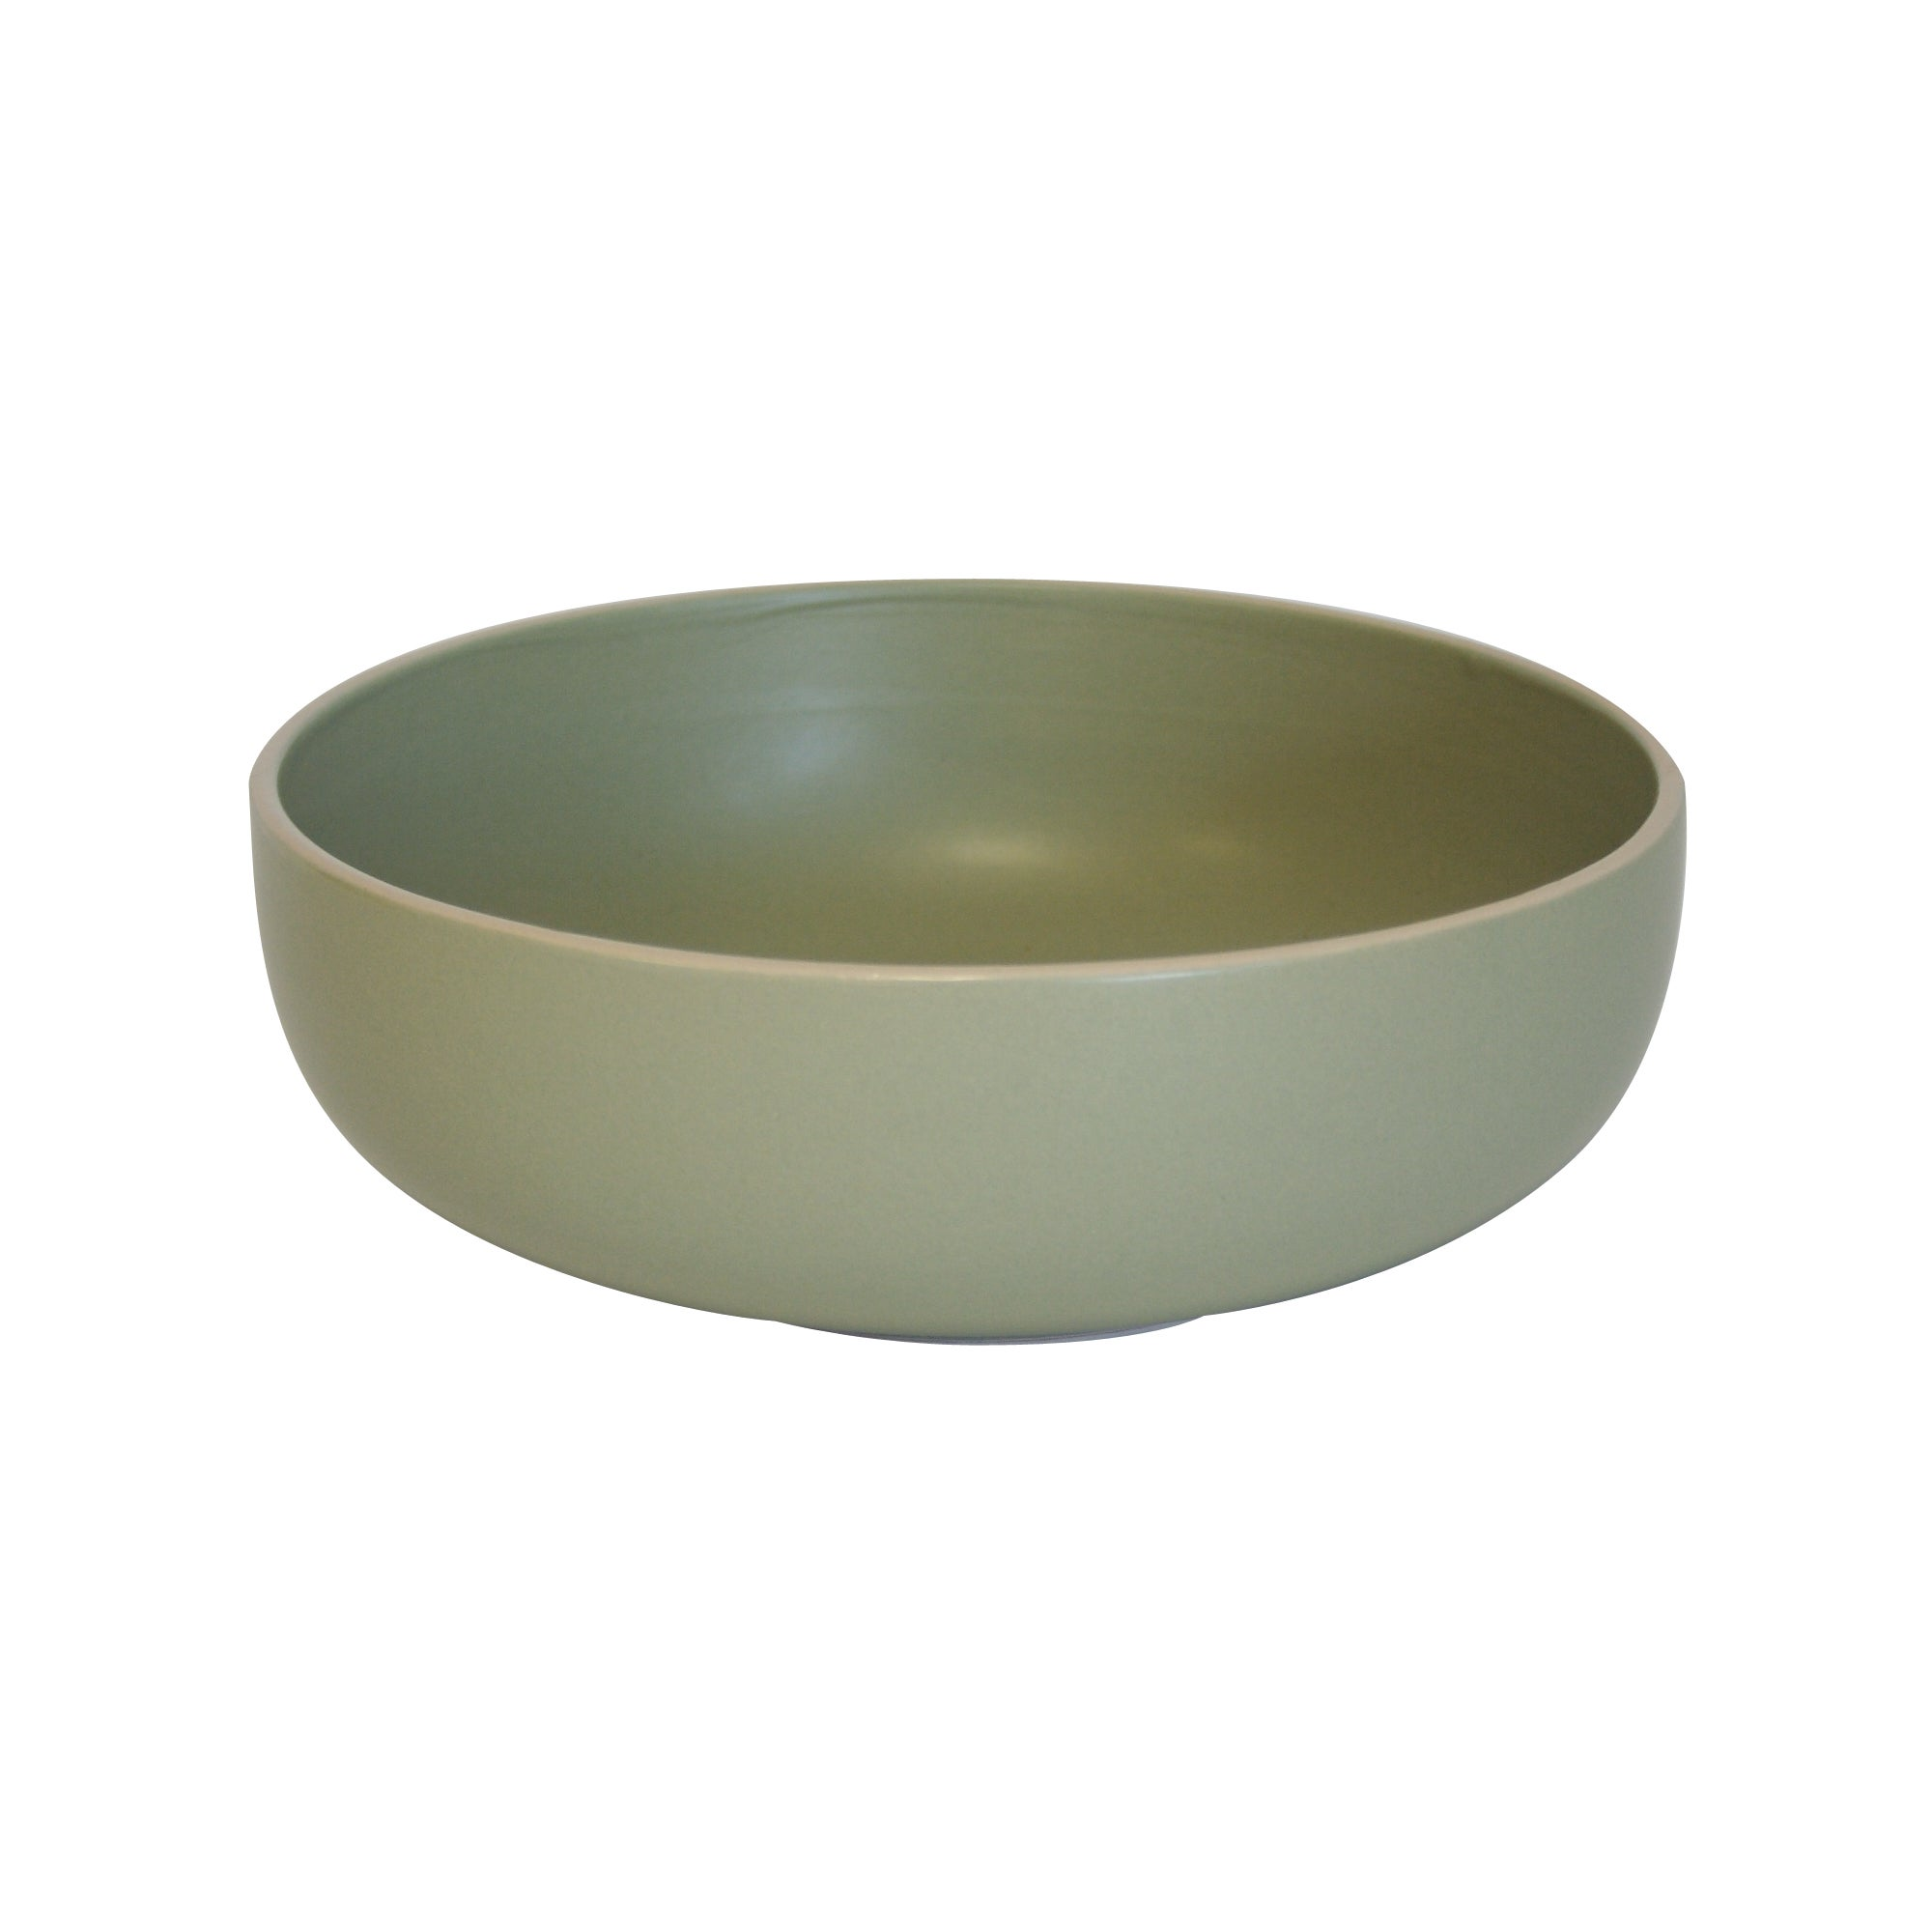 Olive Monaco Collection Bowl